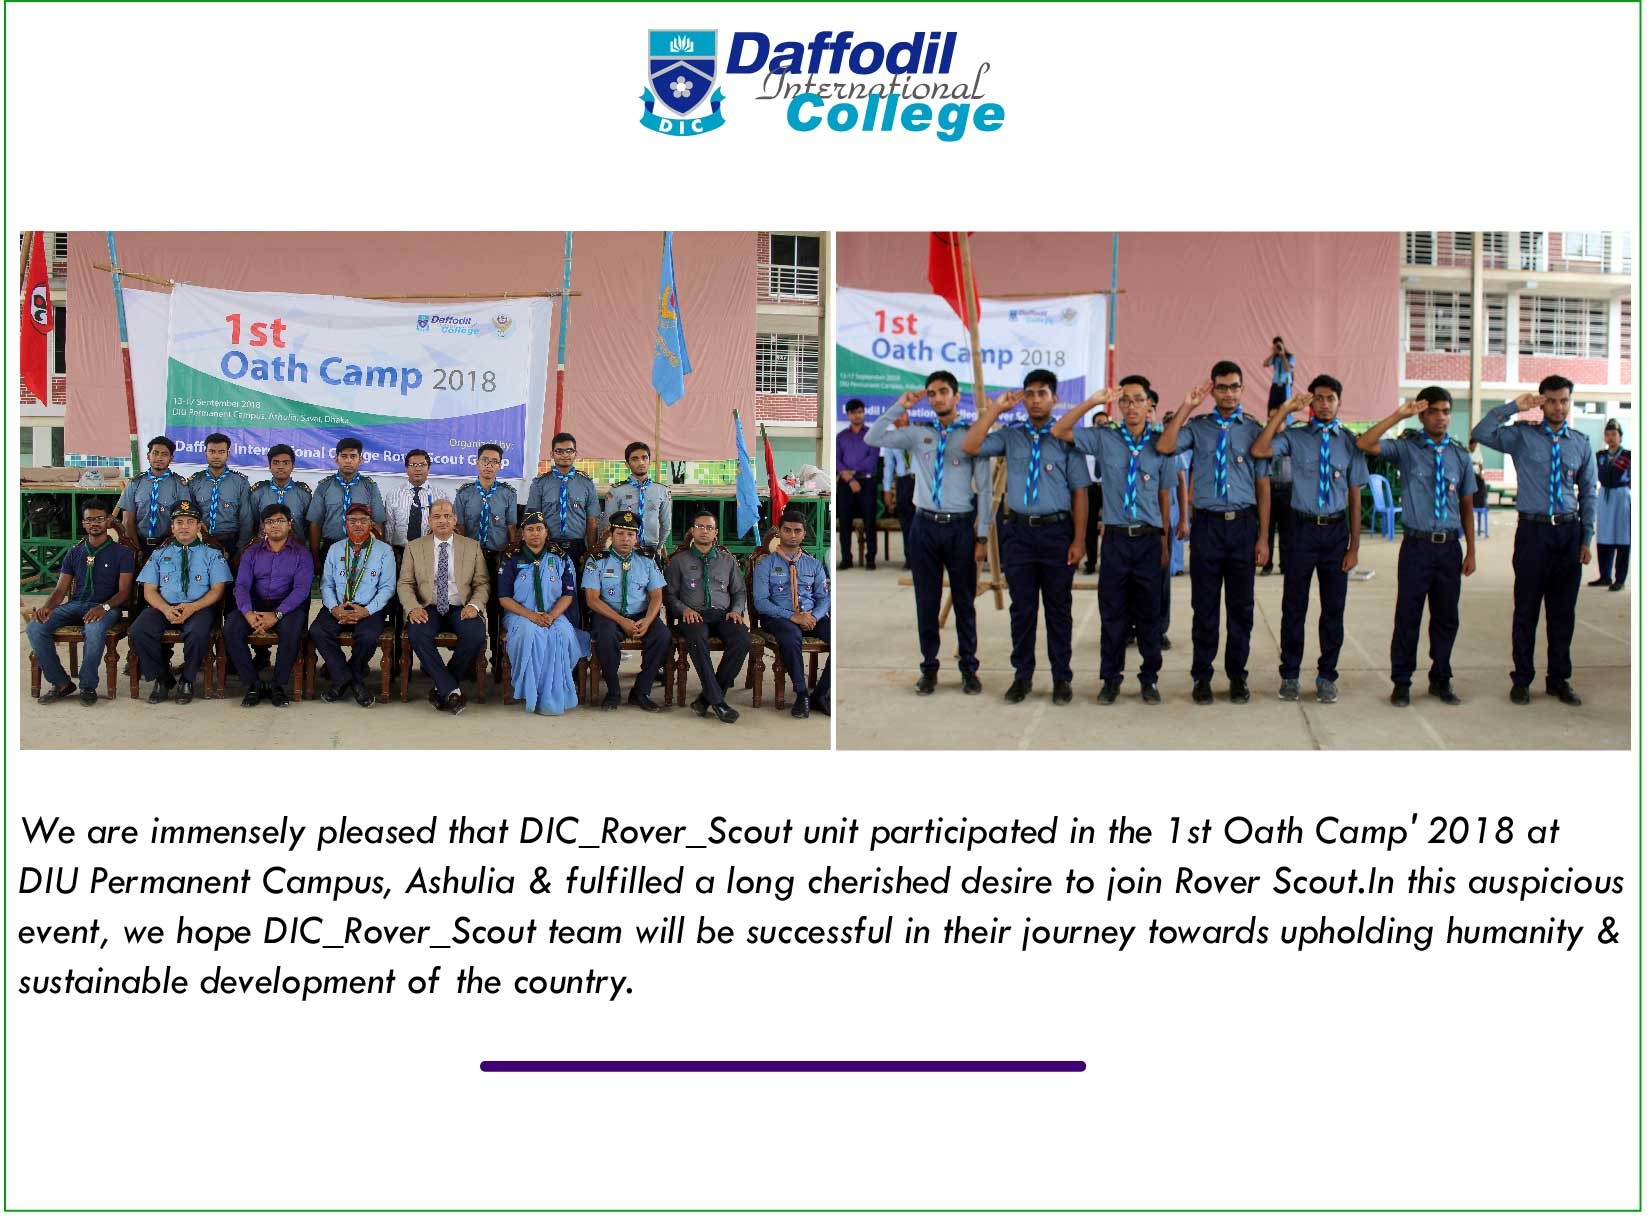 DIC Rover Scout unit